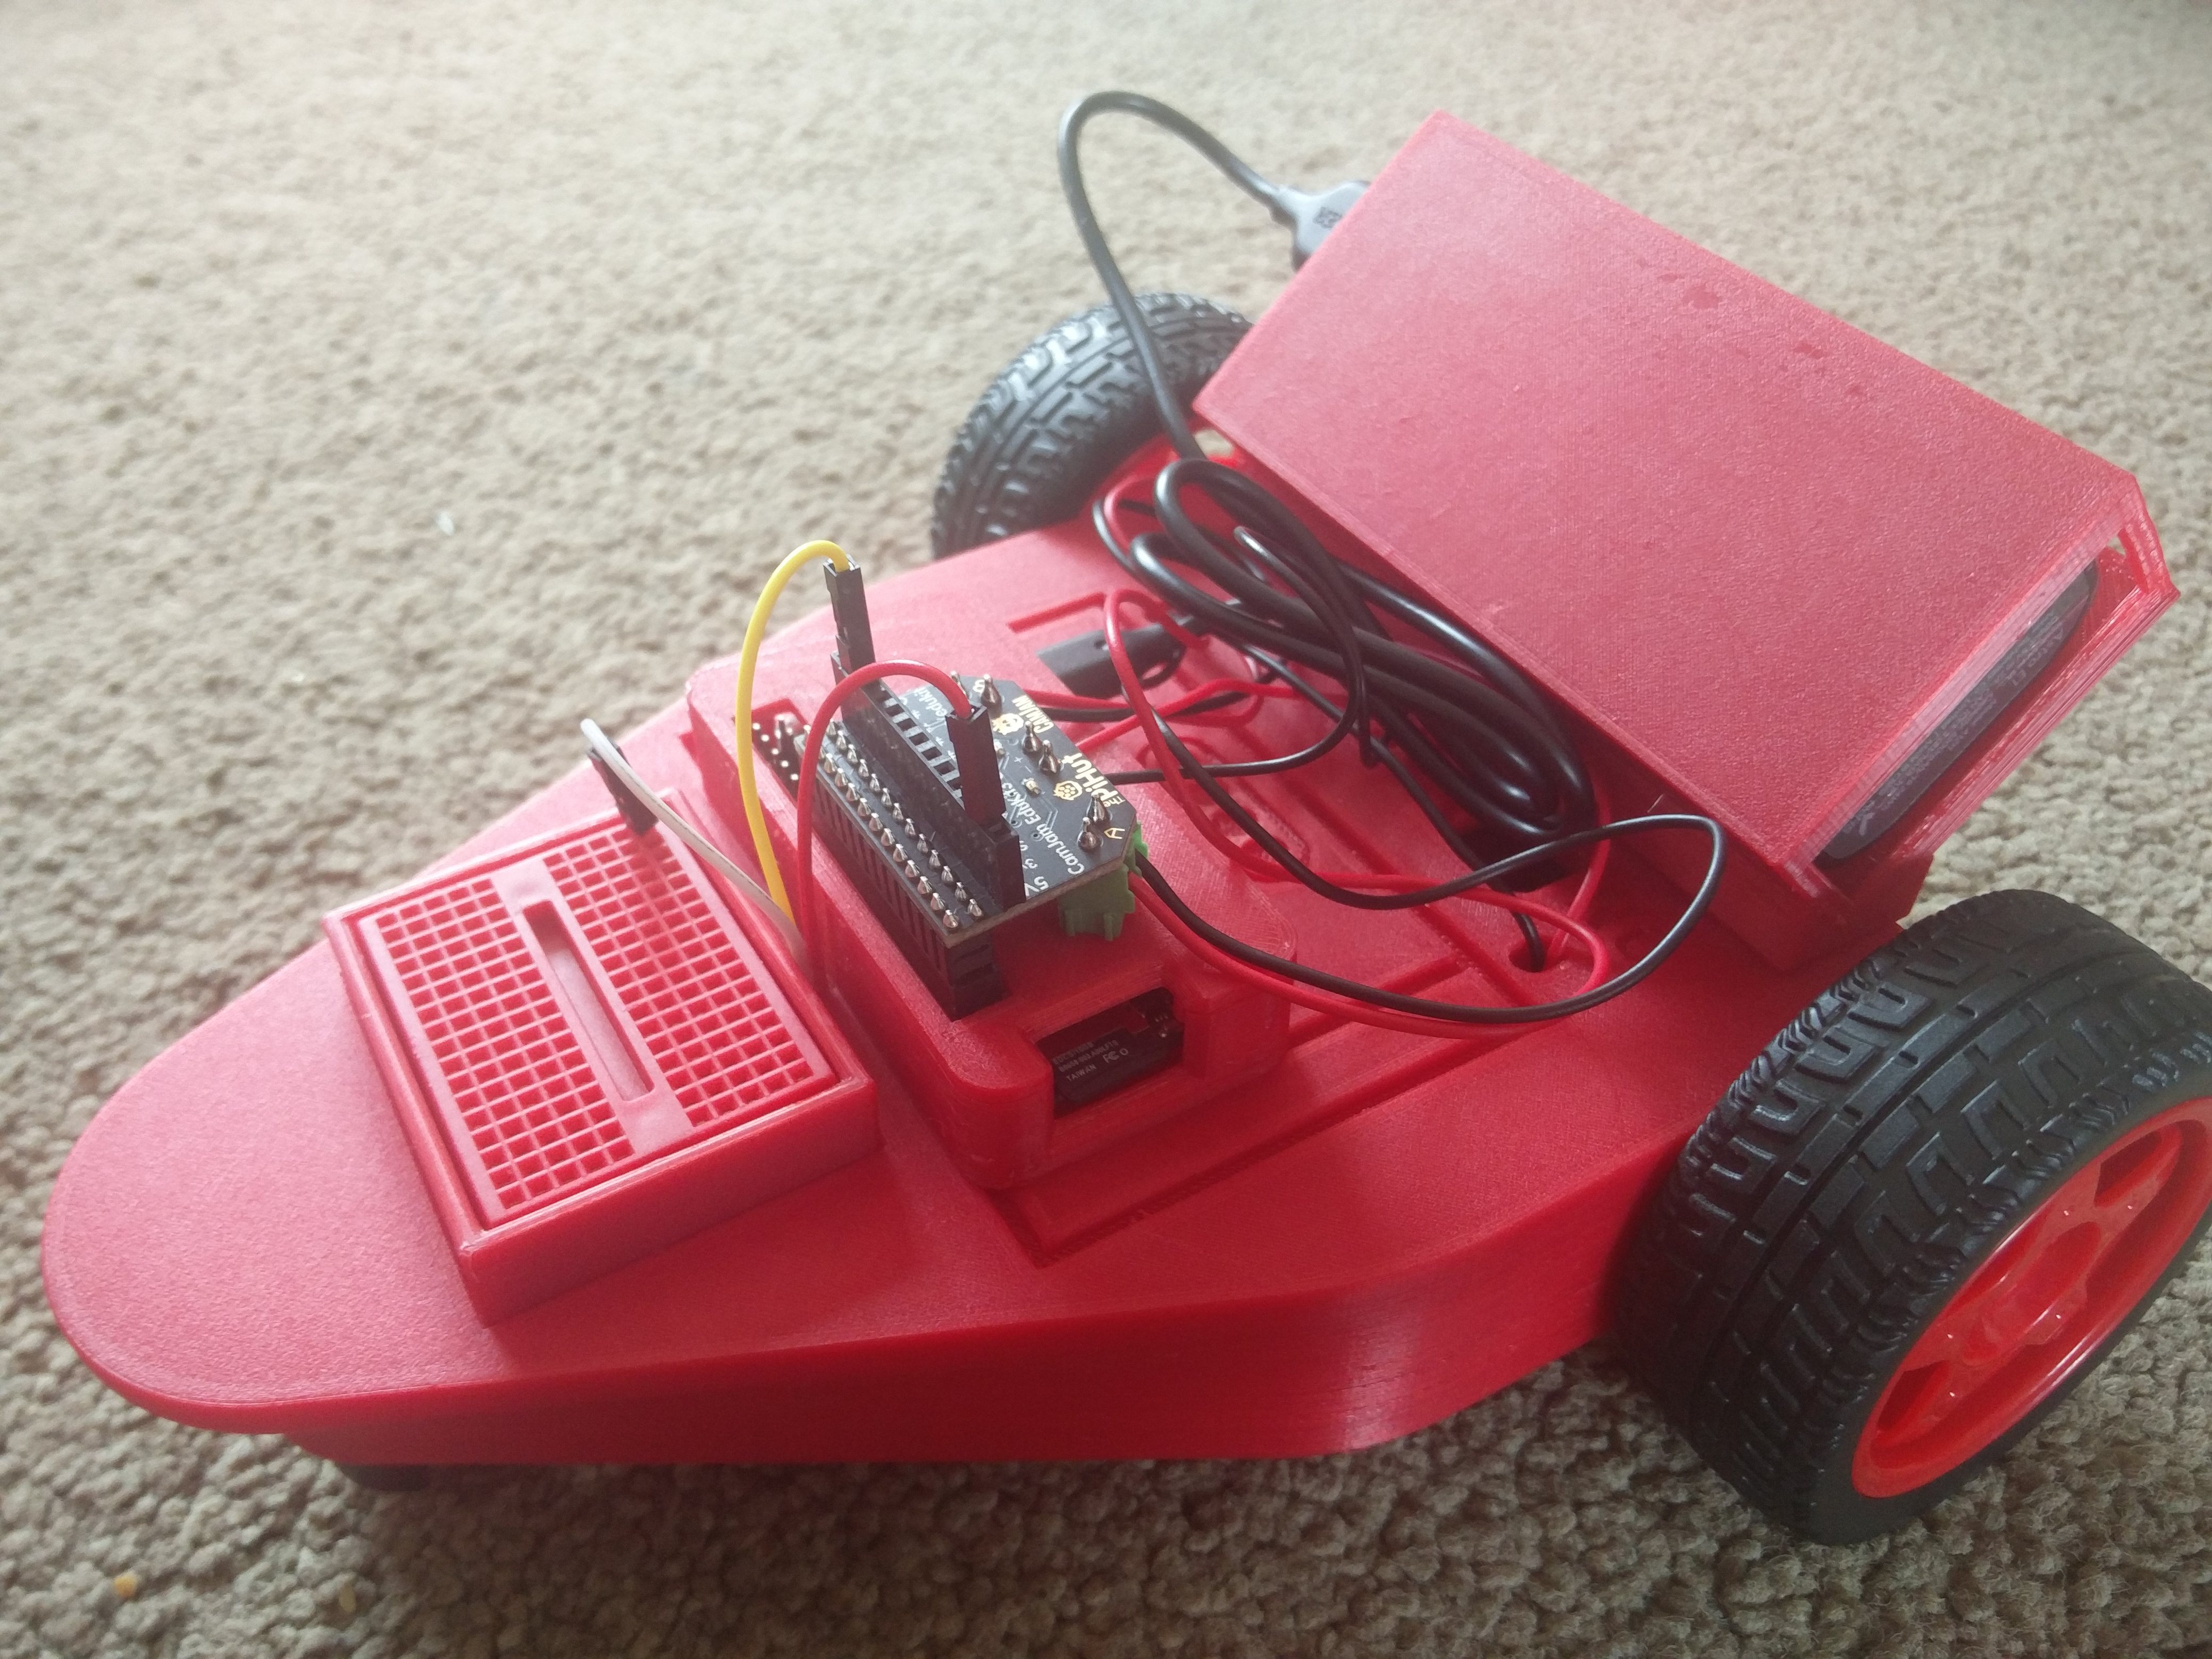 CamJam EduKit #3 Robot Chassis for the Raspberry Pi by thingyNik